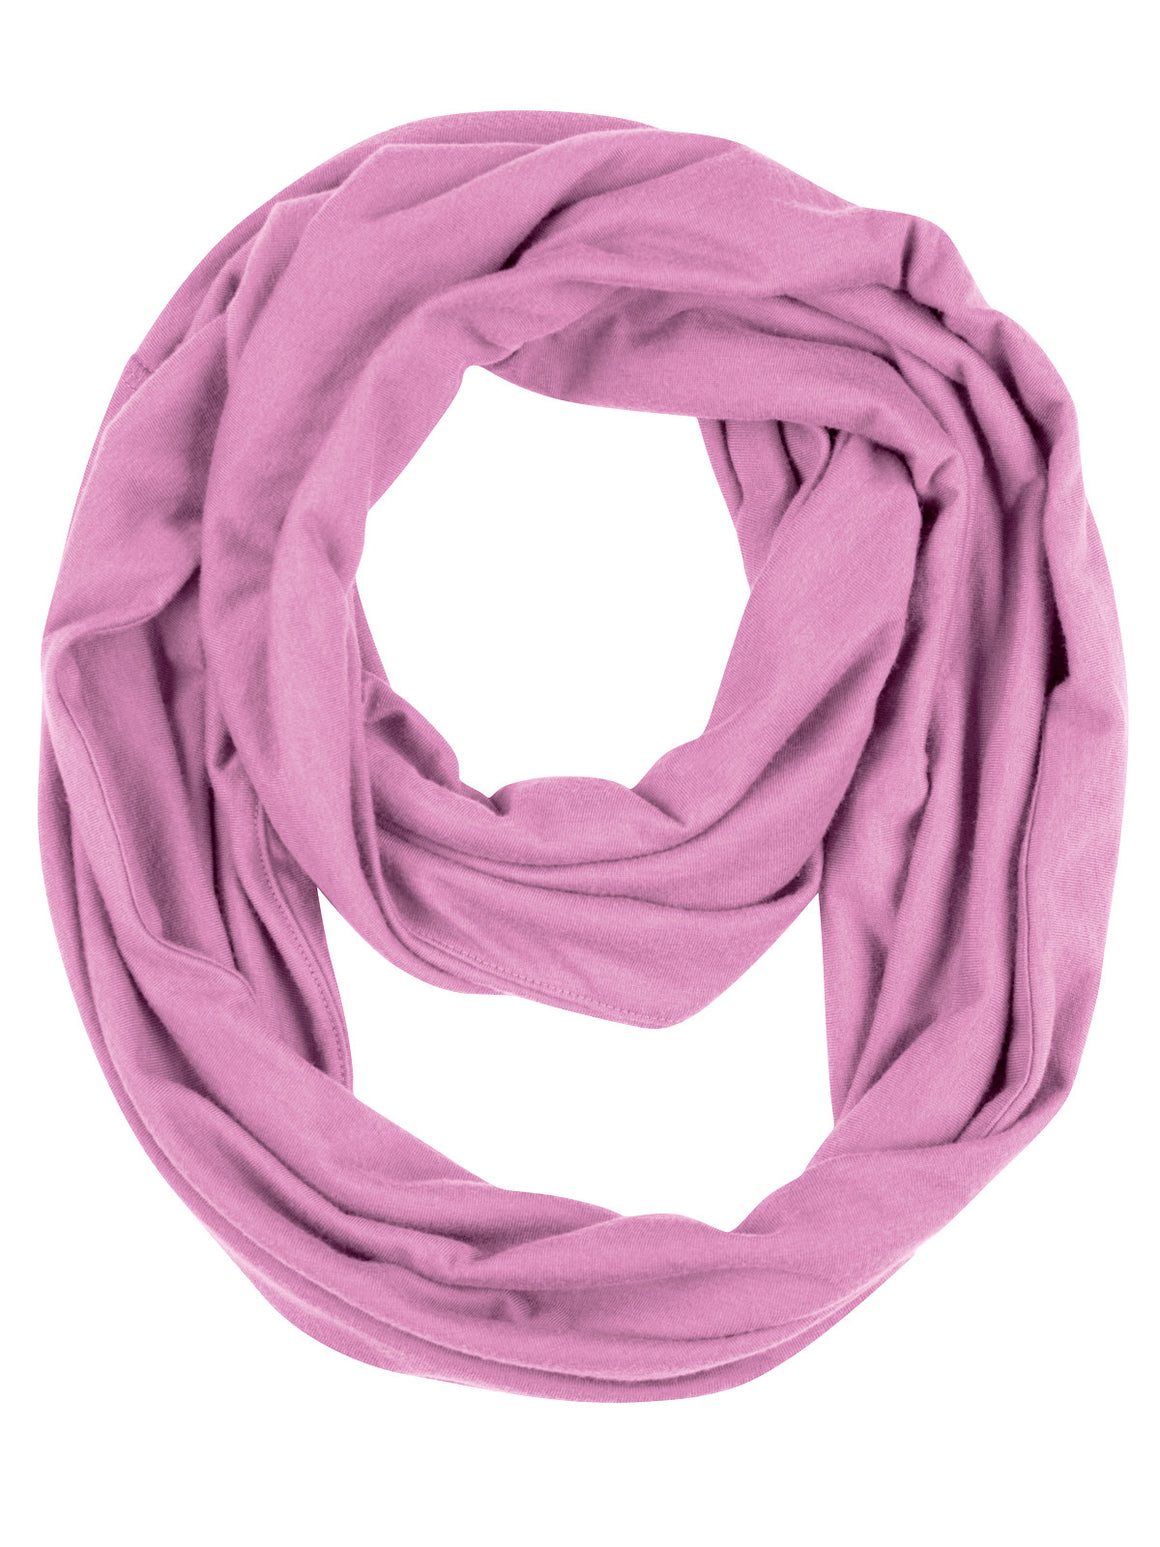 Infinity Scarf - Ice Pink